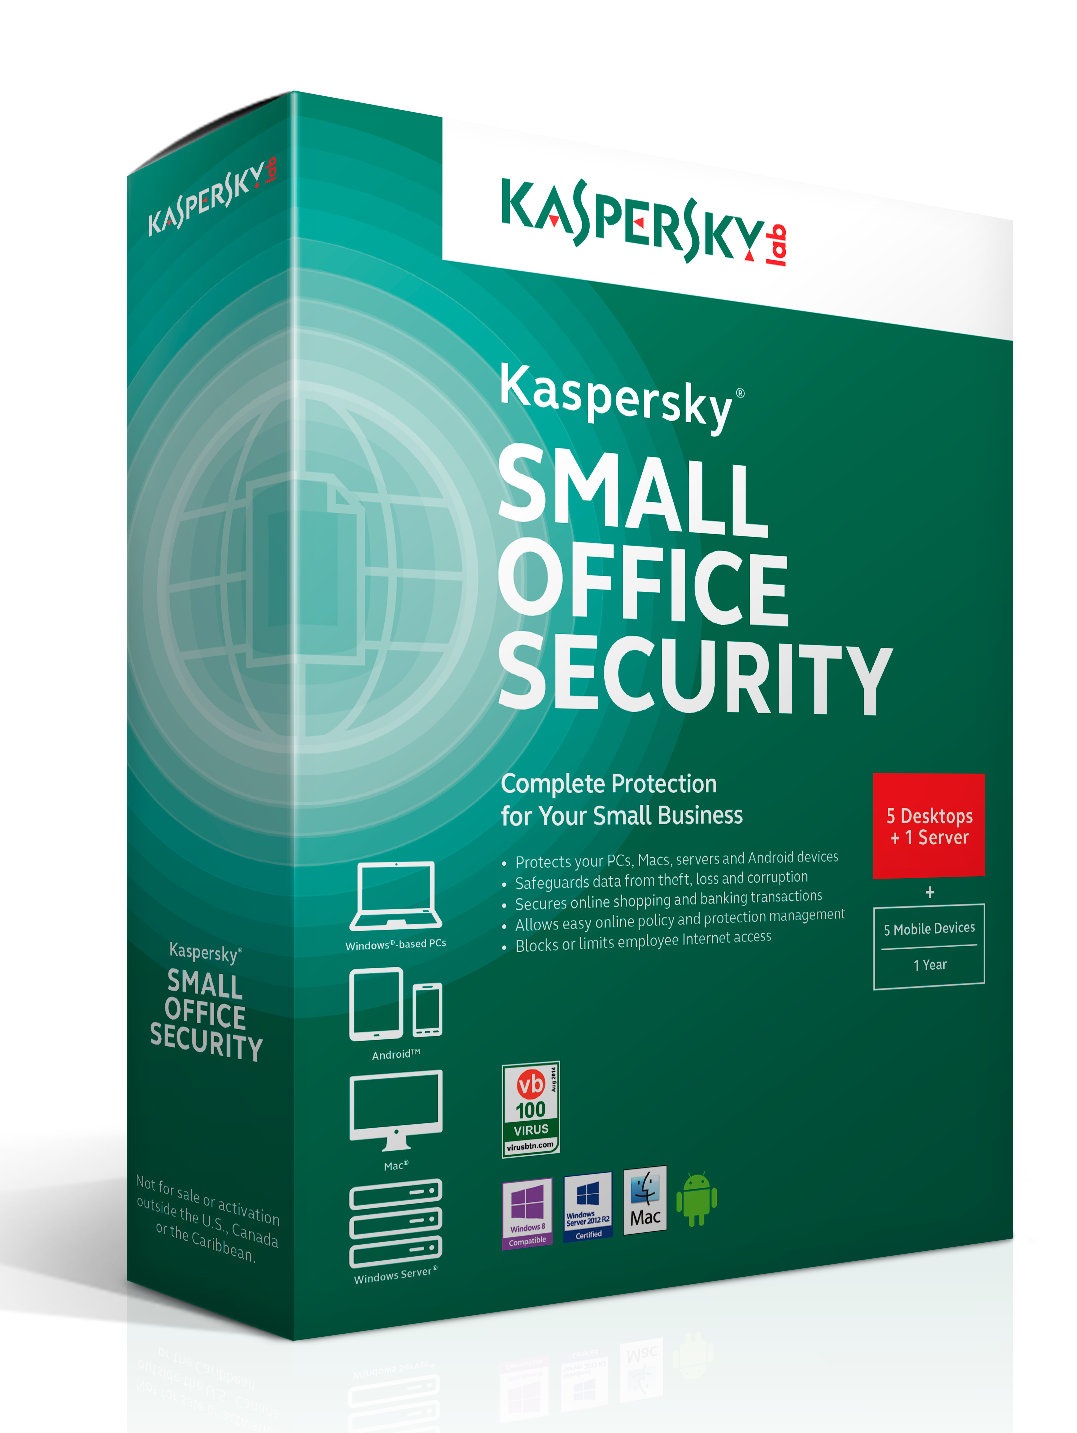 Kaspersky Small Office Security 3 month